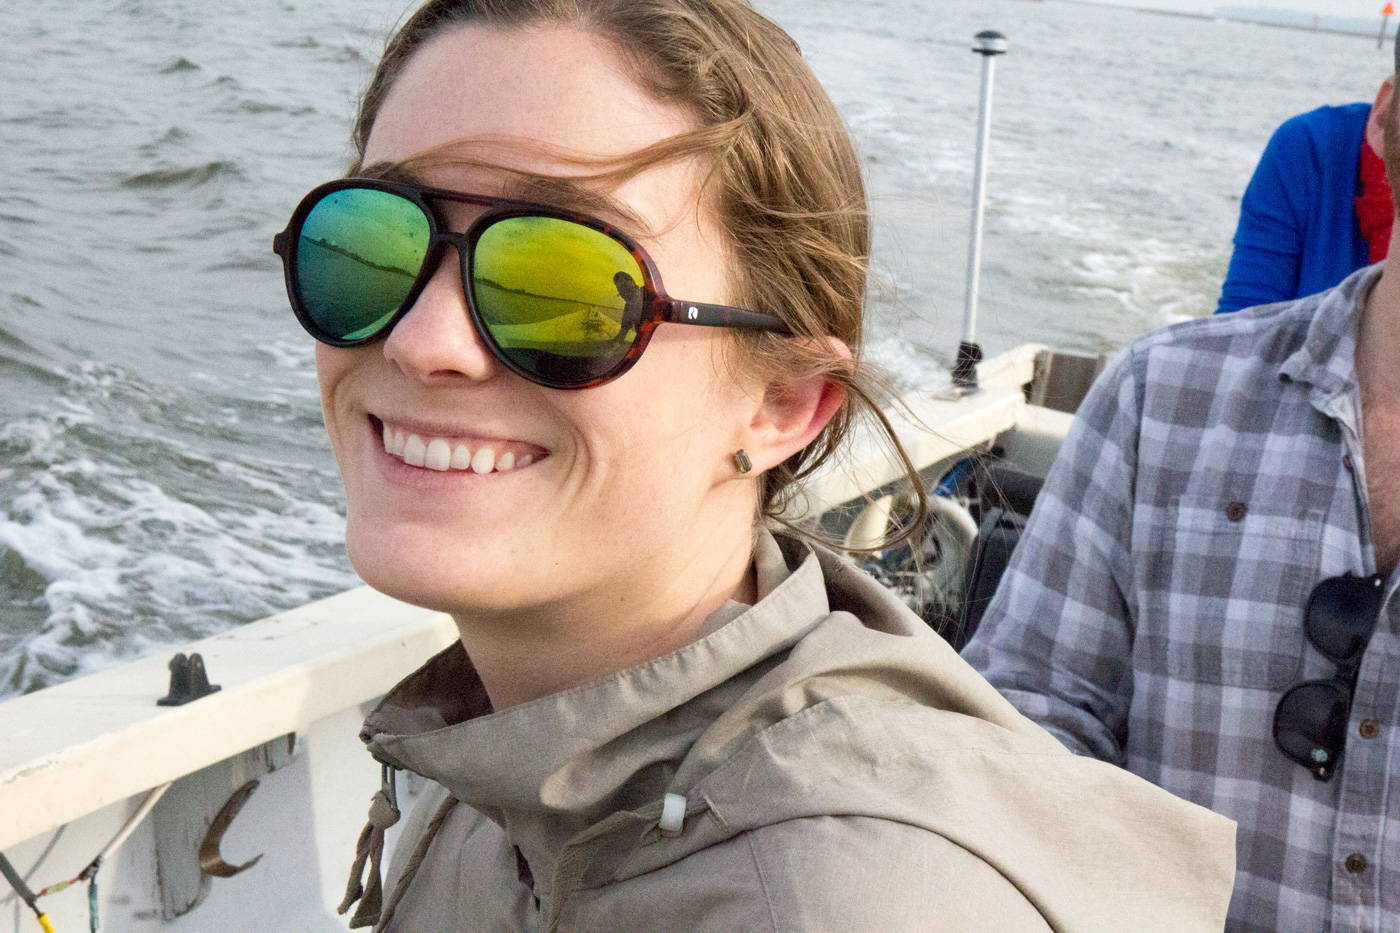 Rheos co-founder Becca Berton wears Rheos sunglasses with hydrophobic coating, allowing for perfect clarity.